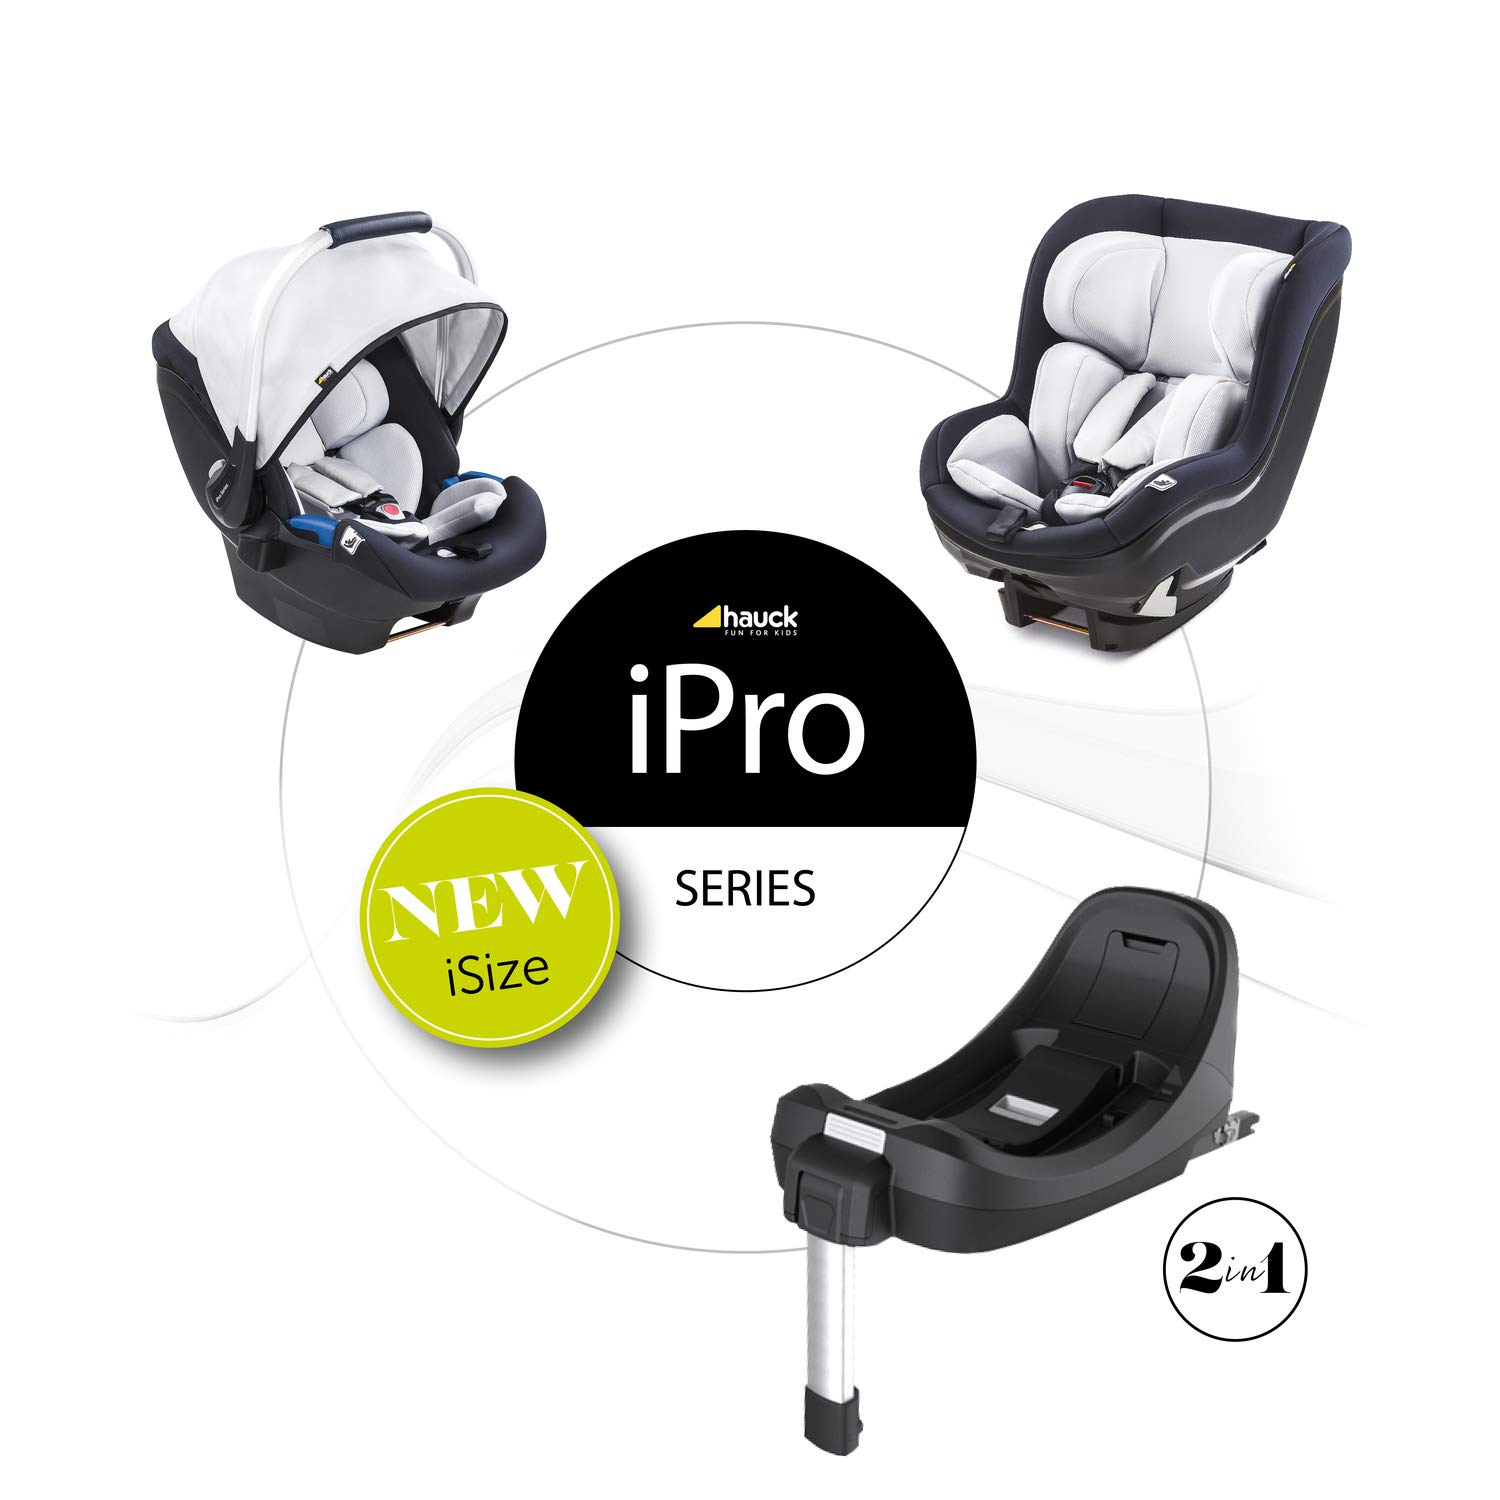 Hauck Ipro Base Isofix Base Compatible With Hauck Ipro Baby And Ipro Kids Car Seats With Colour Indicators For Safety I Size Approved Black Baby